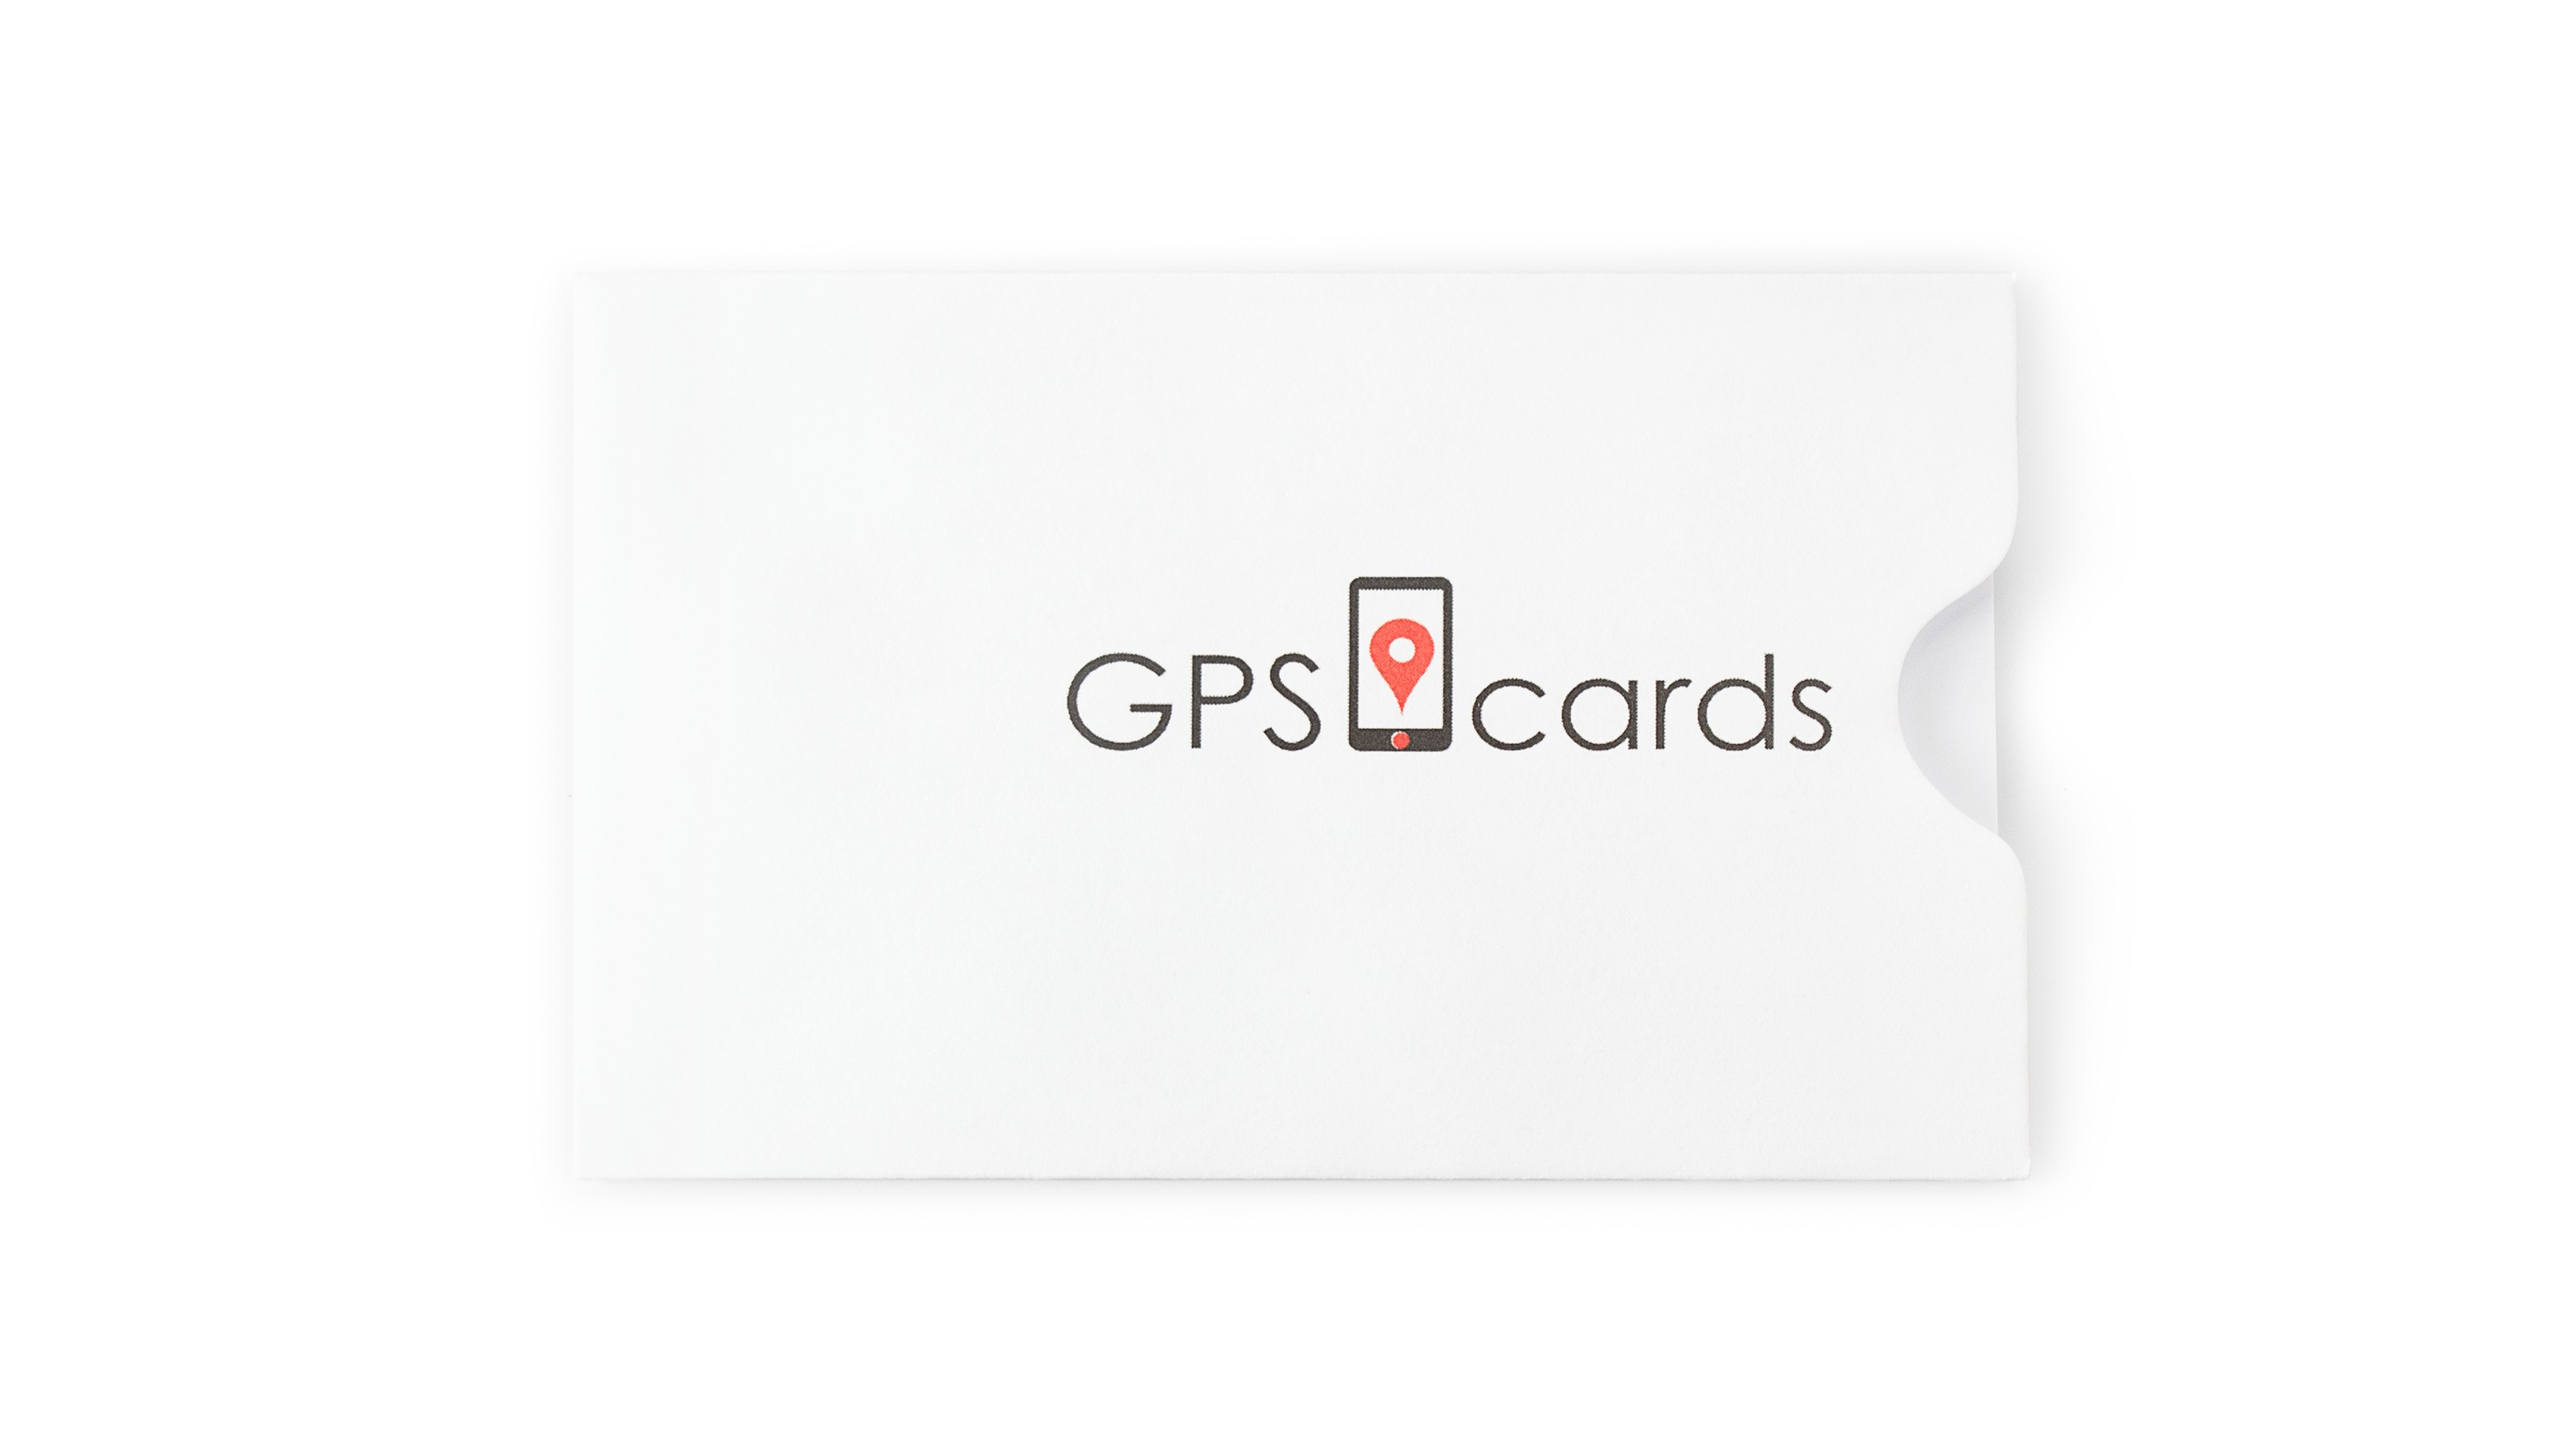 Unlocked ElectroFlip 2G / 3G / 4G GSM Sim Card for GPS Trackers